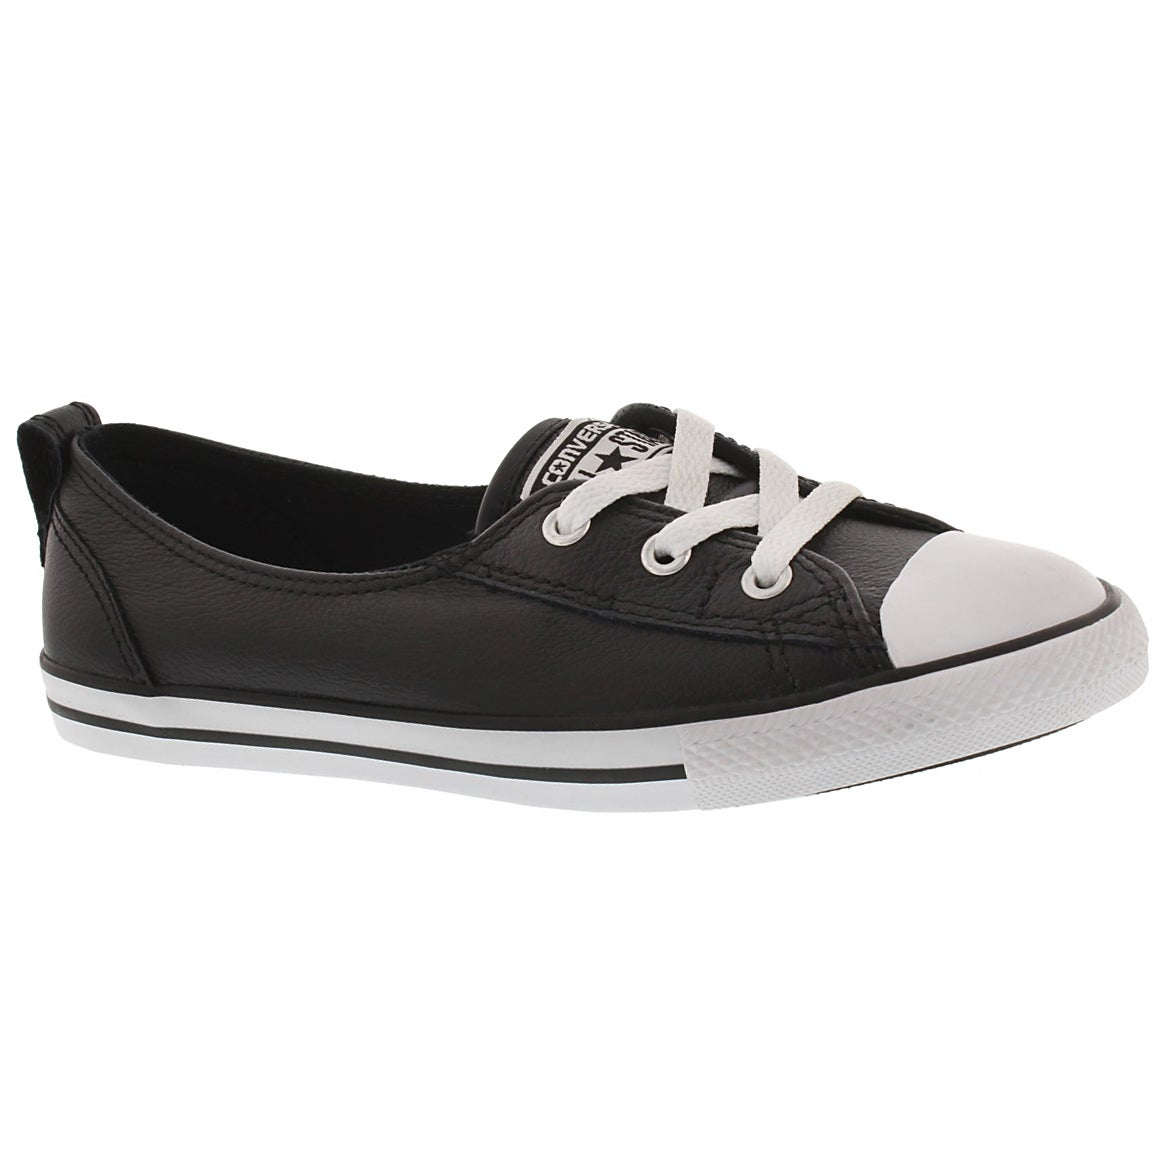 Women's CT ALL STAR BALLET LACE black sneakers